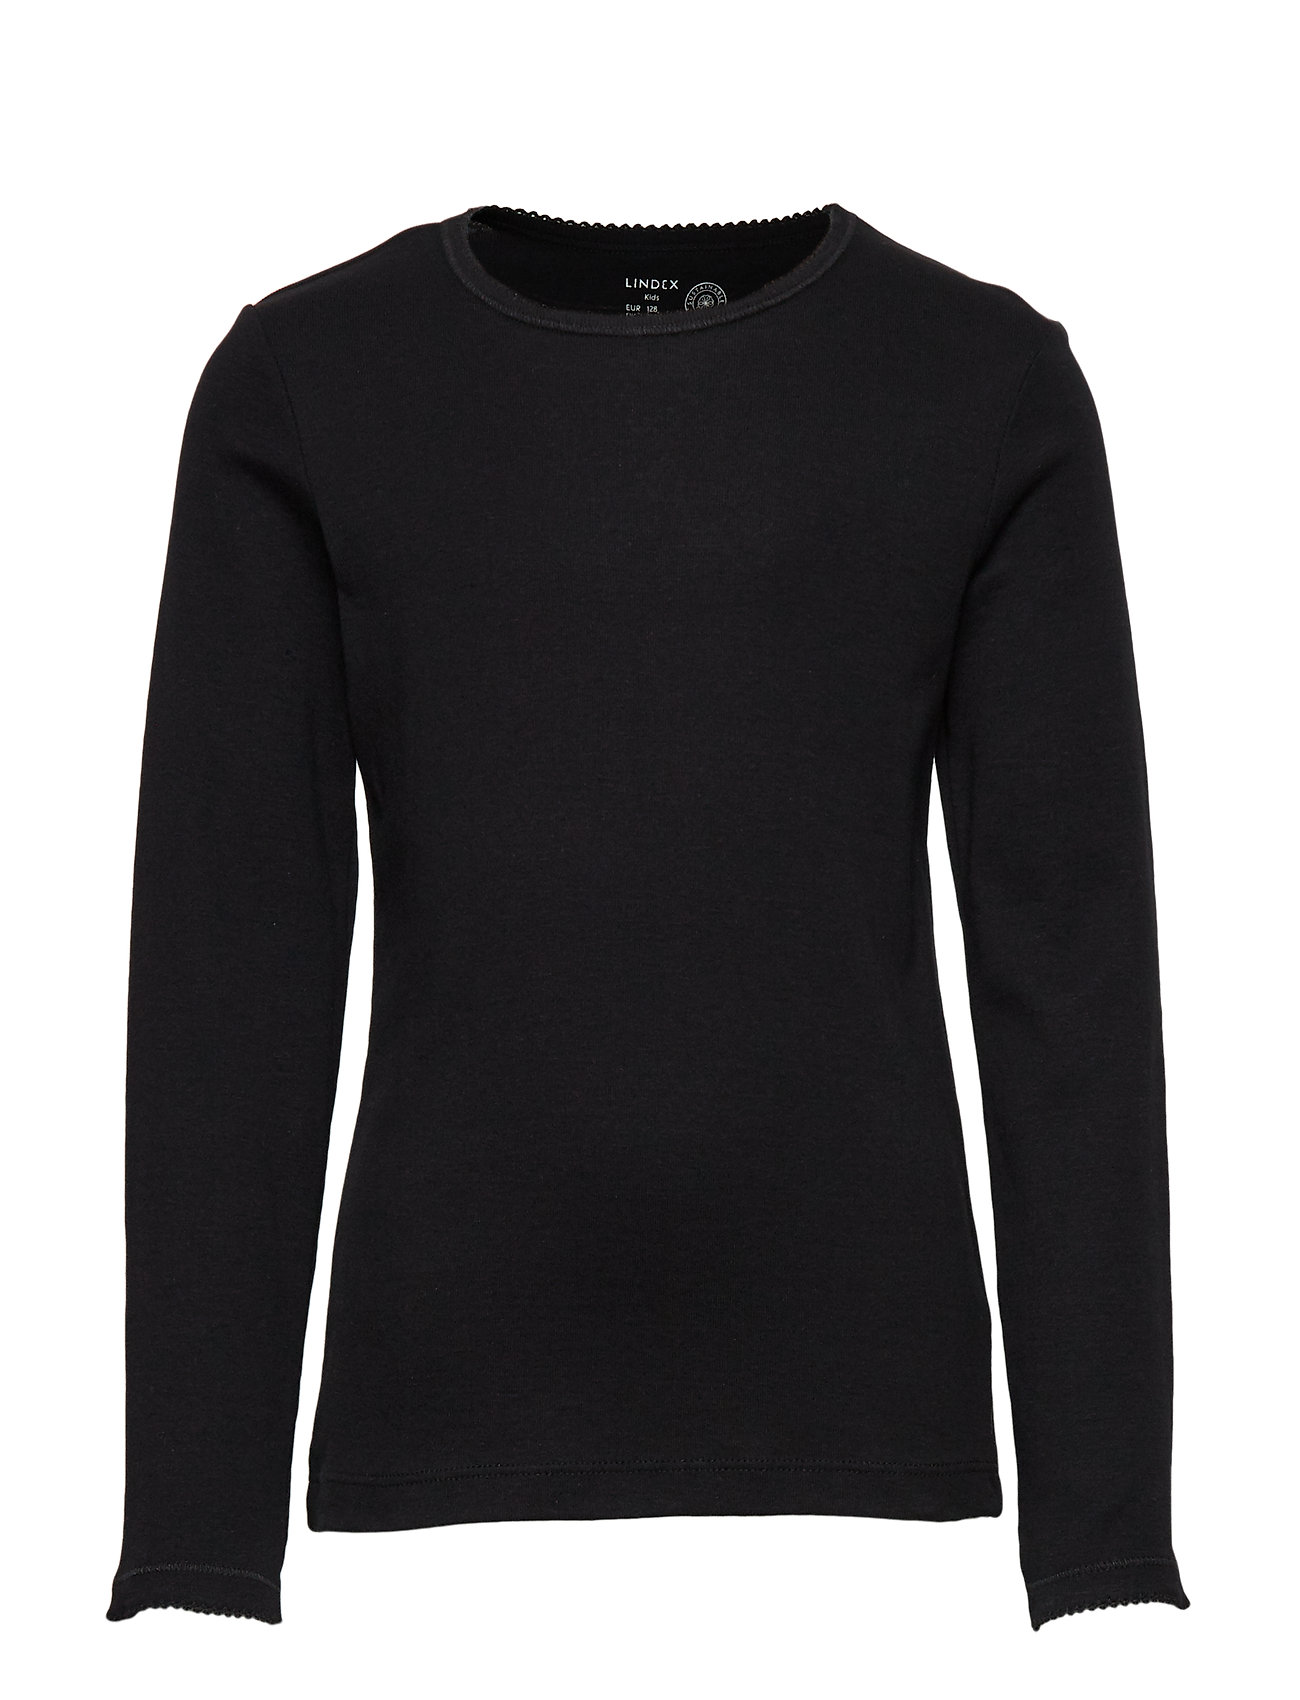 Lindex Long Sleeve Top - BLACK